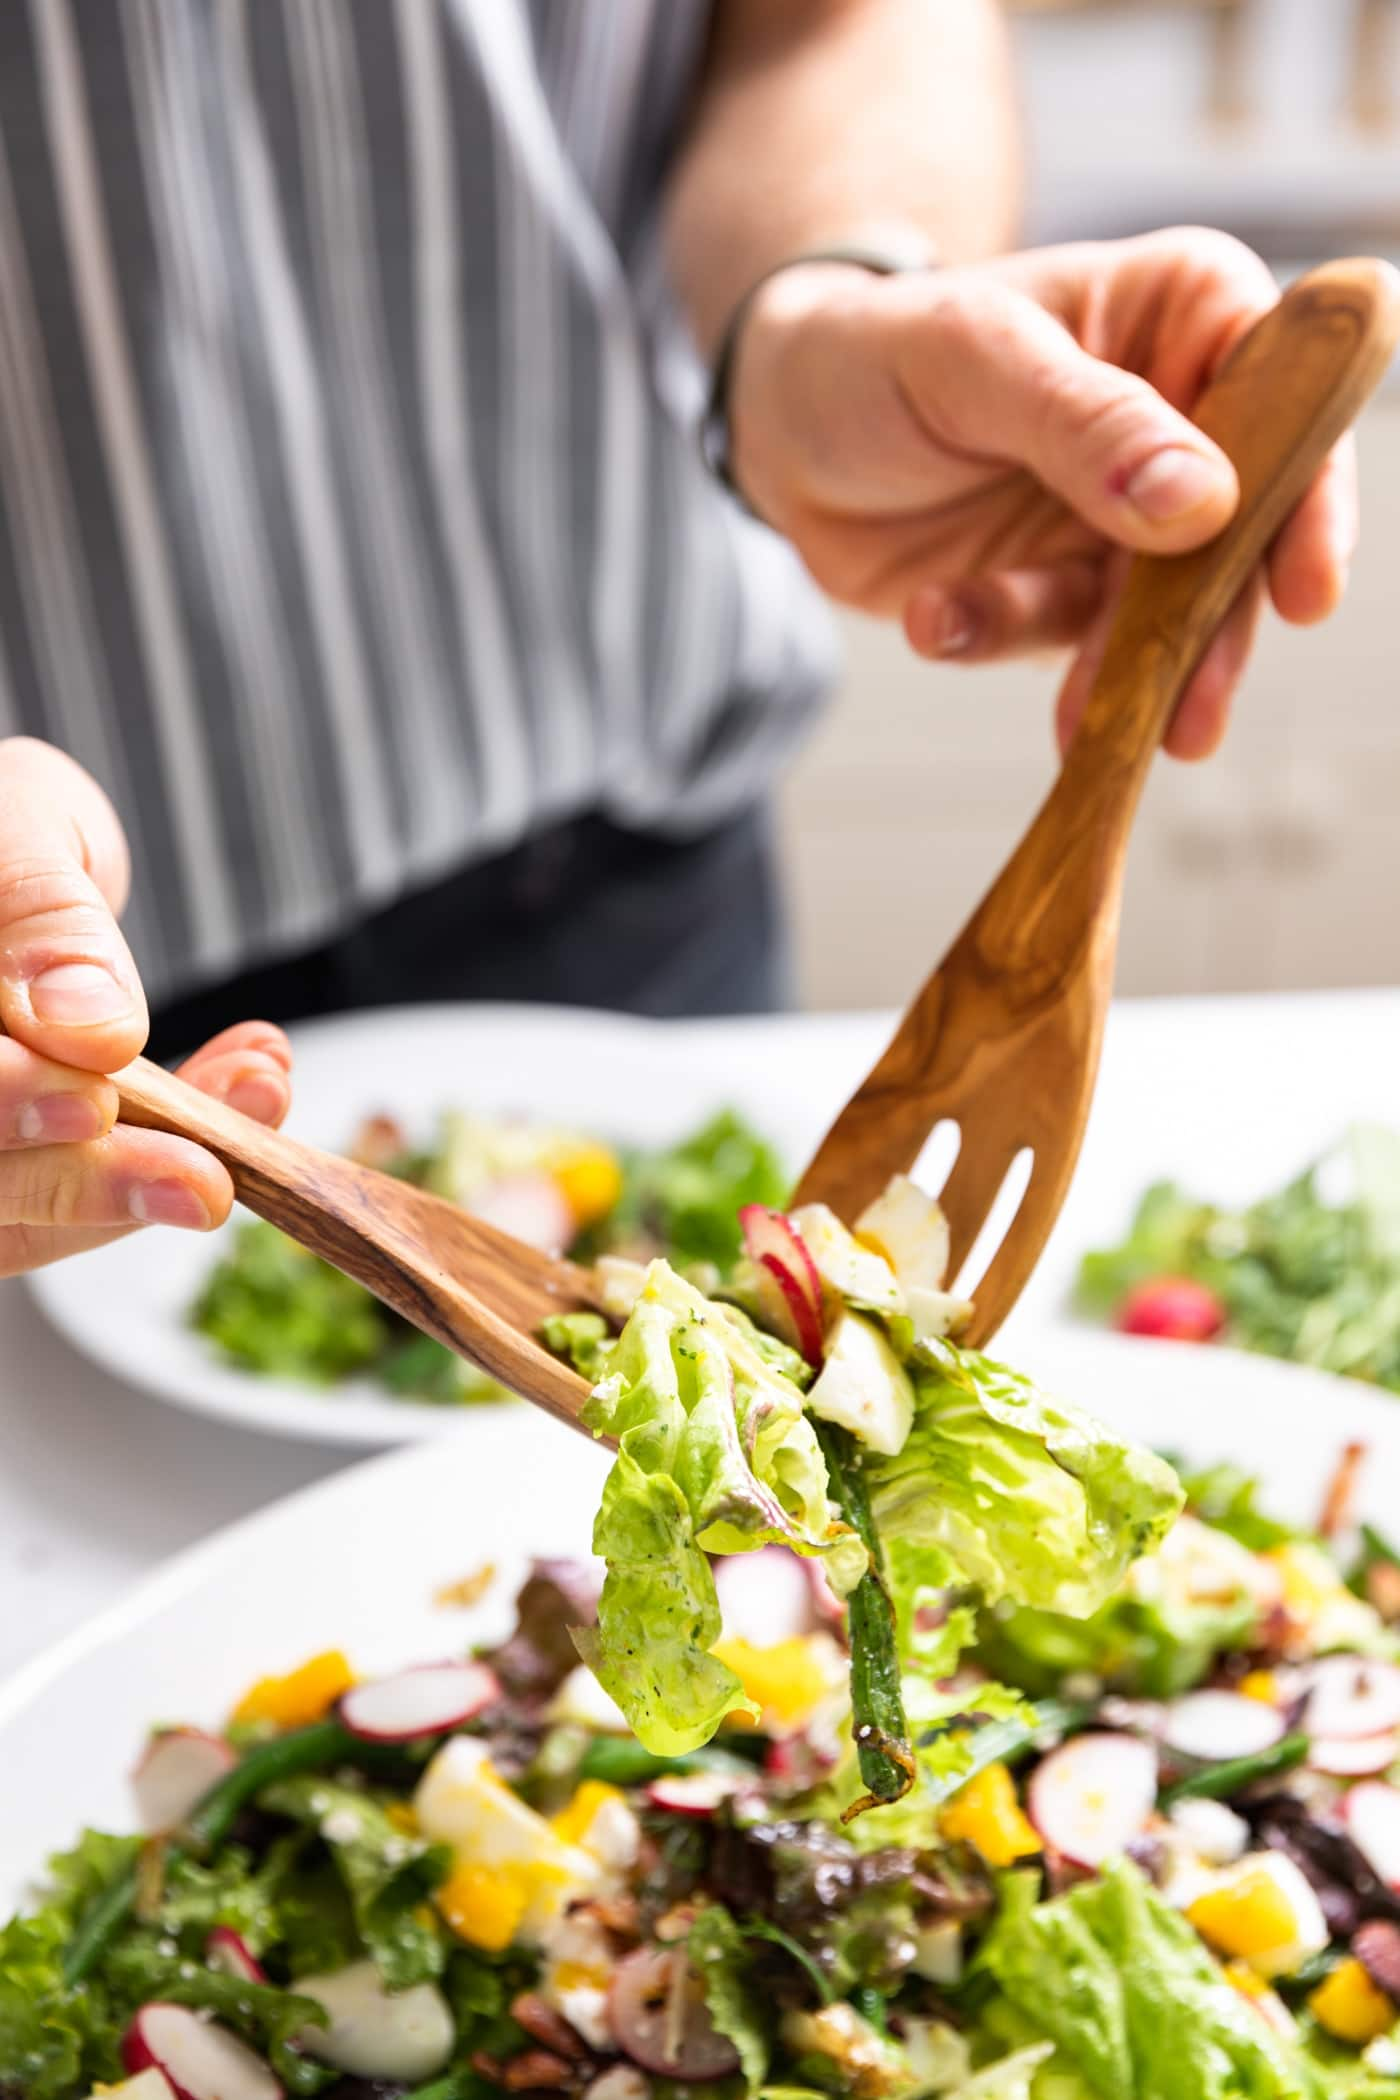 Two hands holding wooden salad tongs lifting up pieces of green lettuce with platter filled with rest of salad below